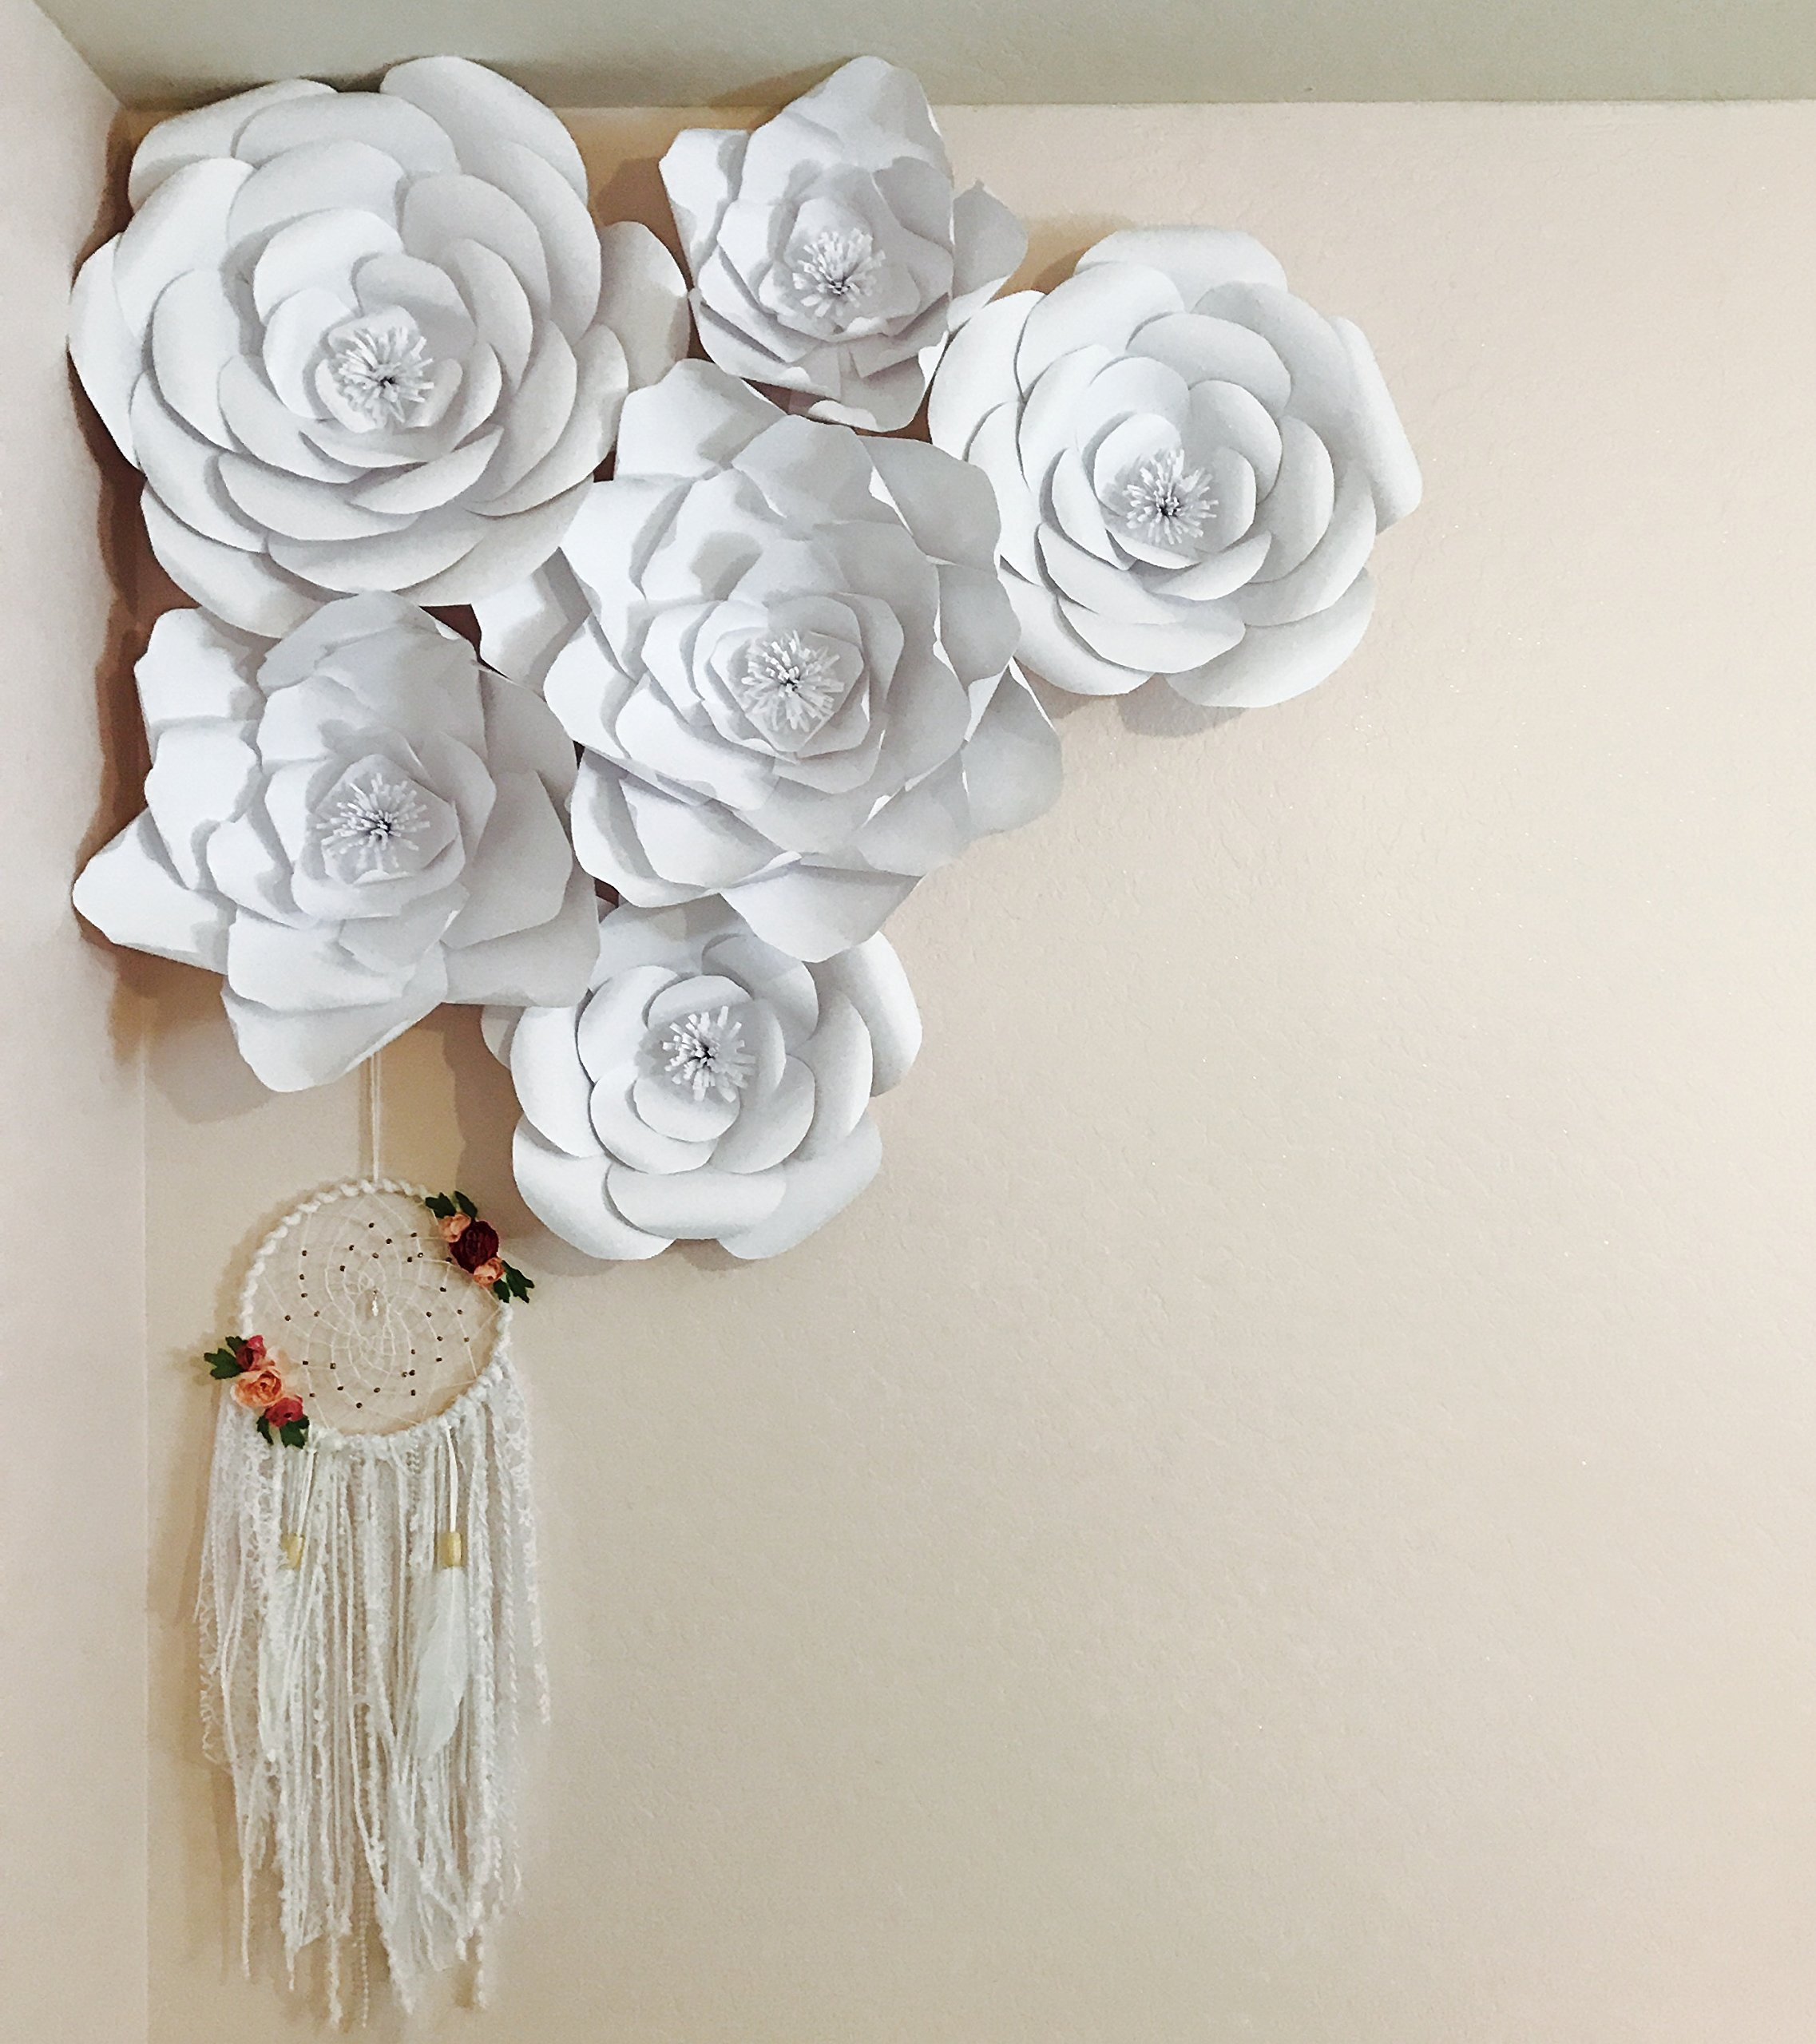 Paper flower template kit make your own paper flowers paper paper flower template kit make your own paper flowers paper flowers decoration make unlimited flowers diy do it yourself make all sizes rose mightylinksfo